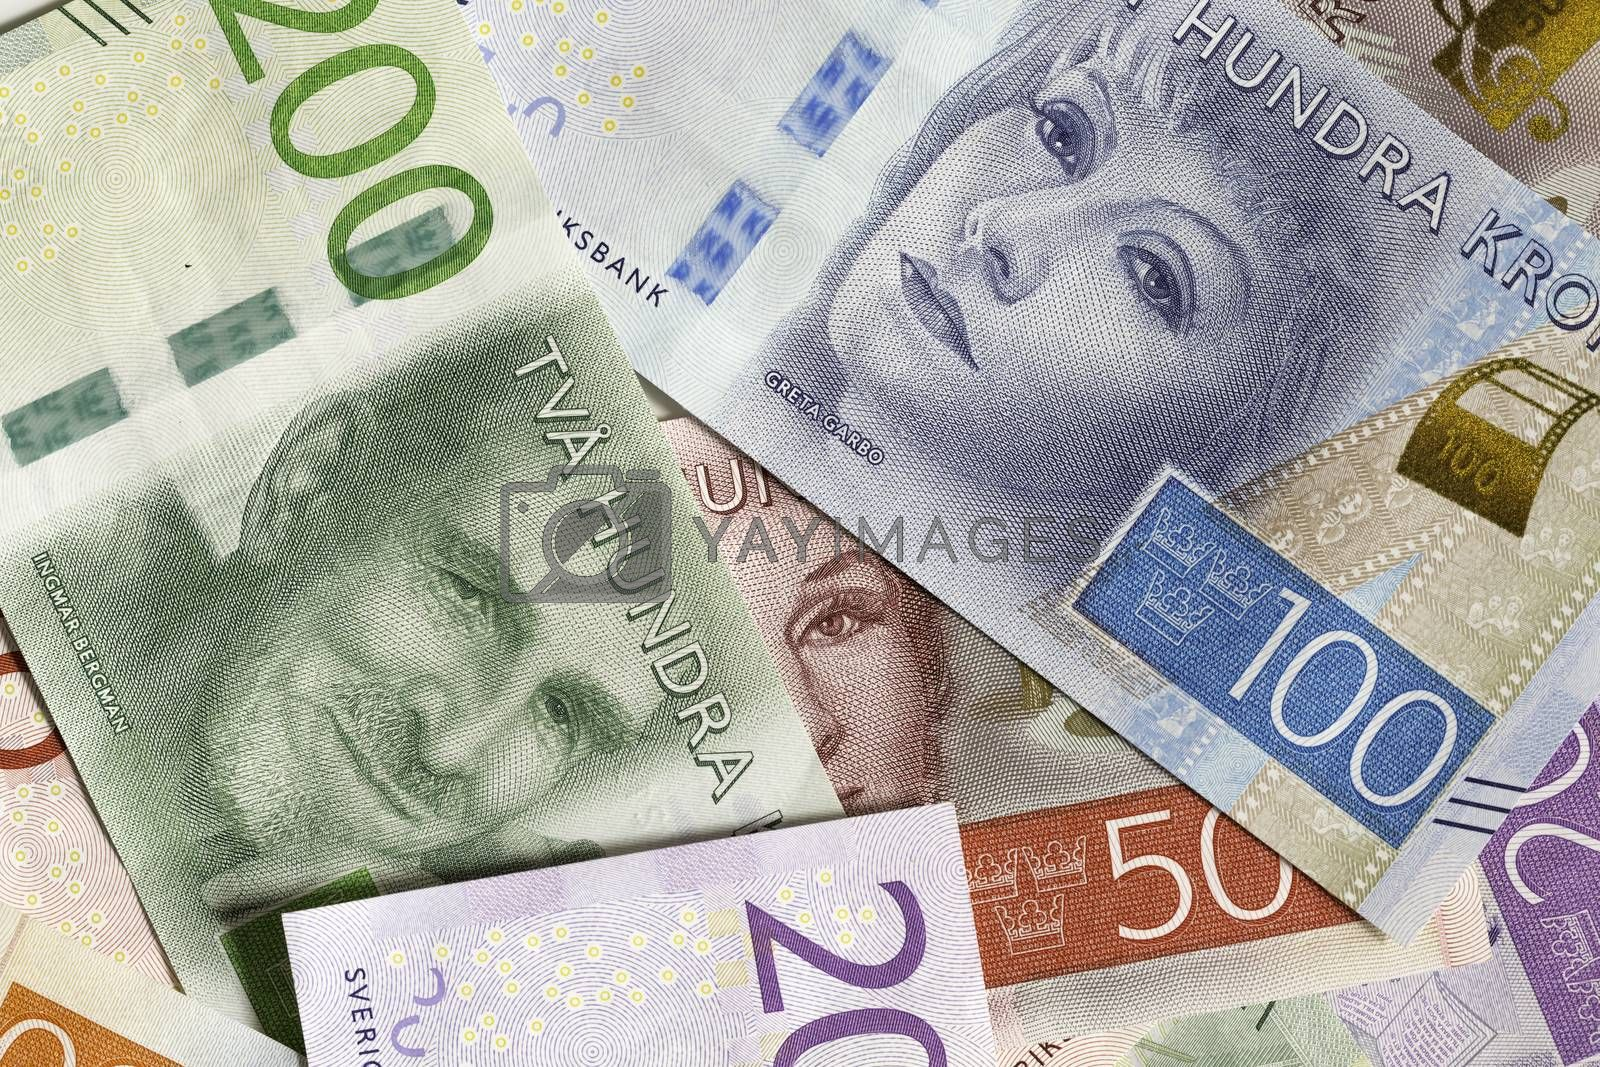 Swedish Currency Close Up by Emmoth